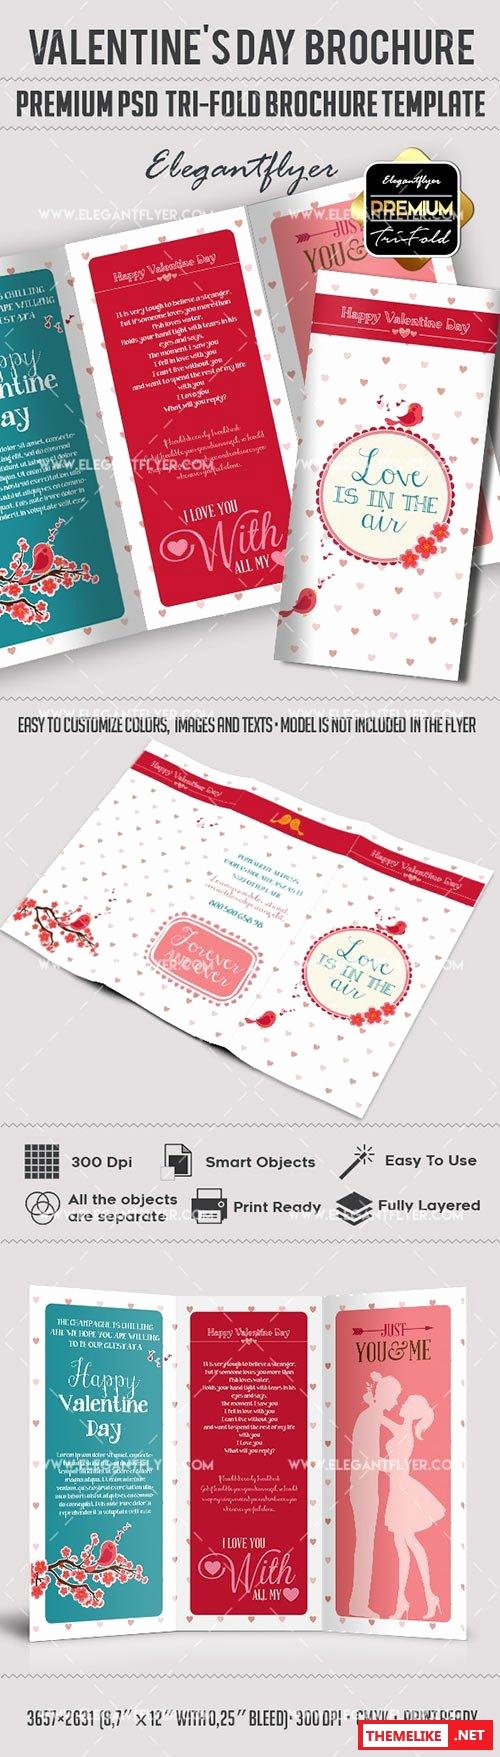 Tri Fold Template Photoshop Inspirational Valentines Day Premium Tri Fold Psd Brochure Template